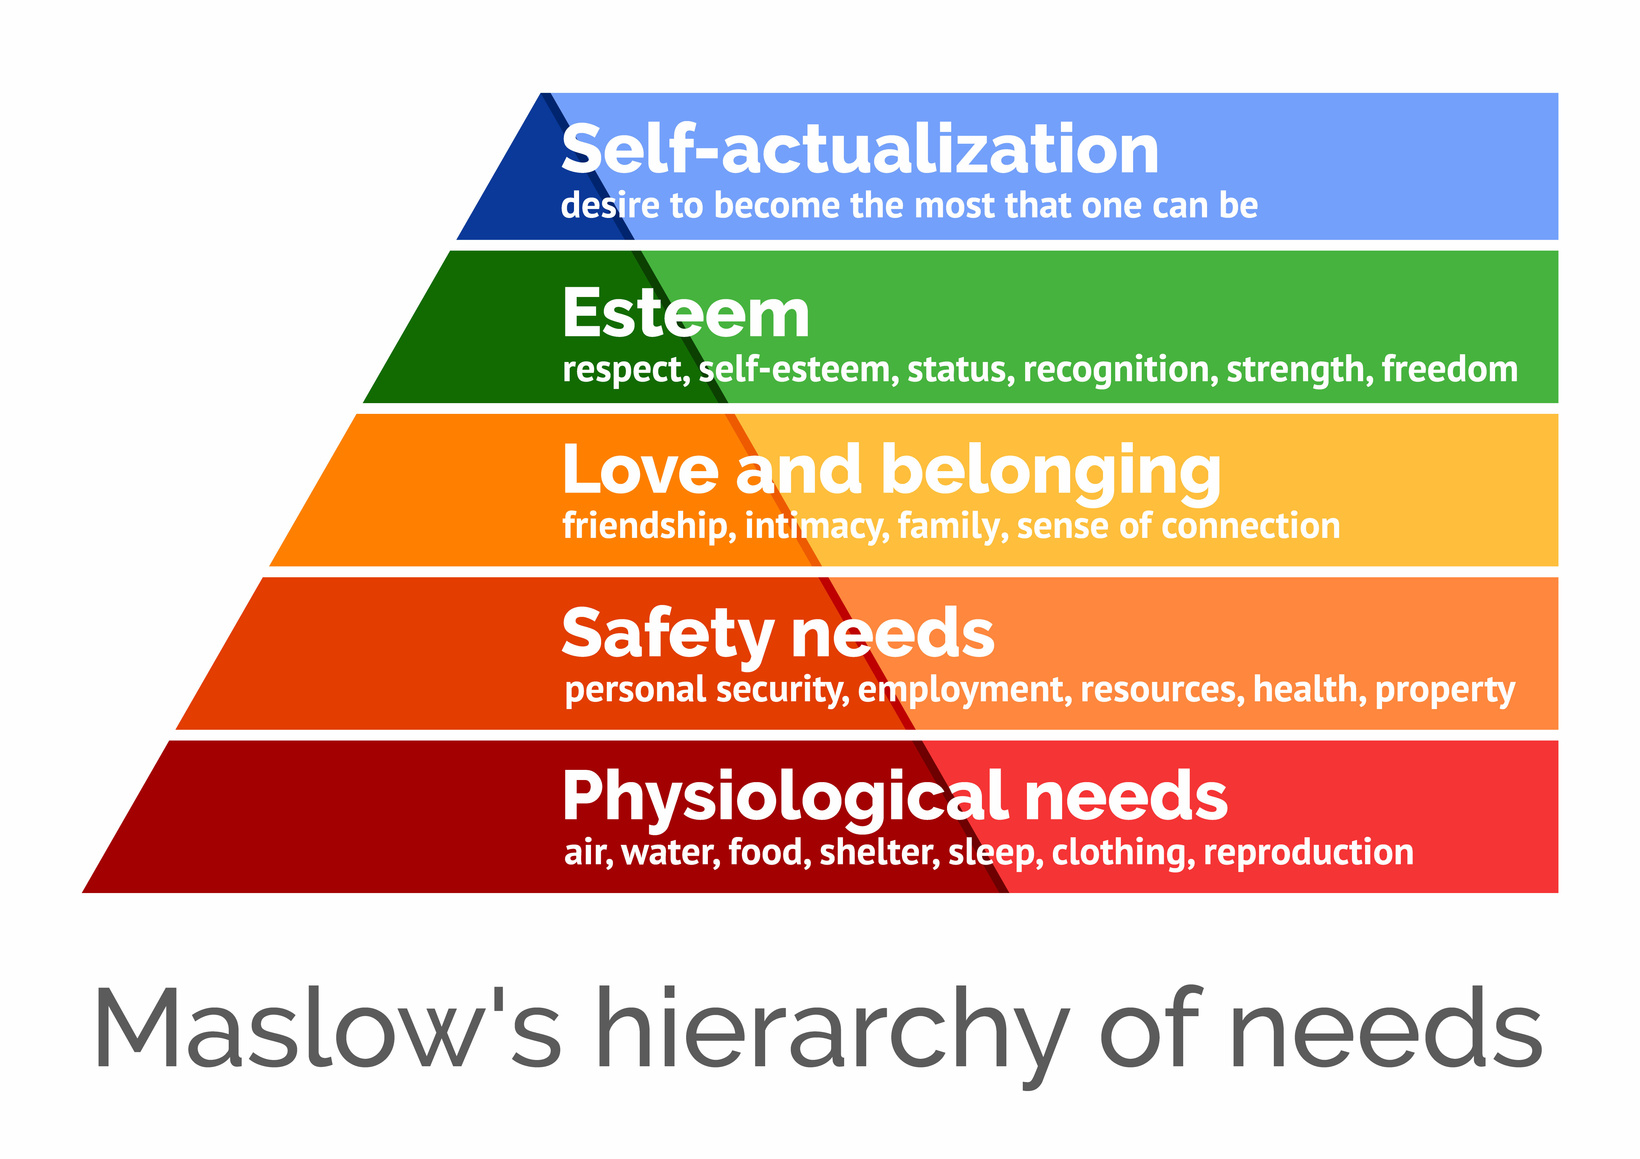 Maslows-Hierarchy-Of-Needs.jpg